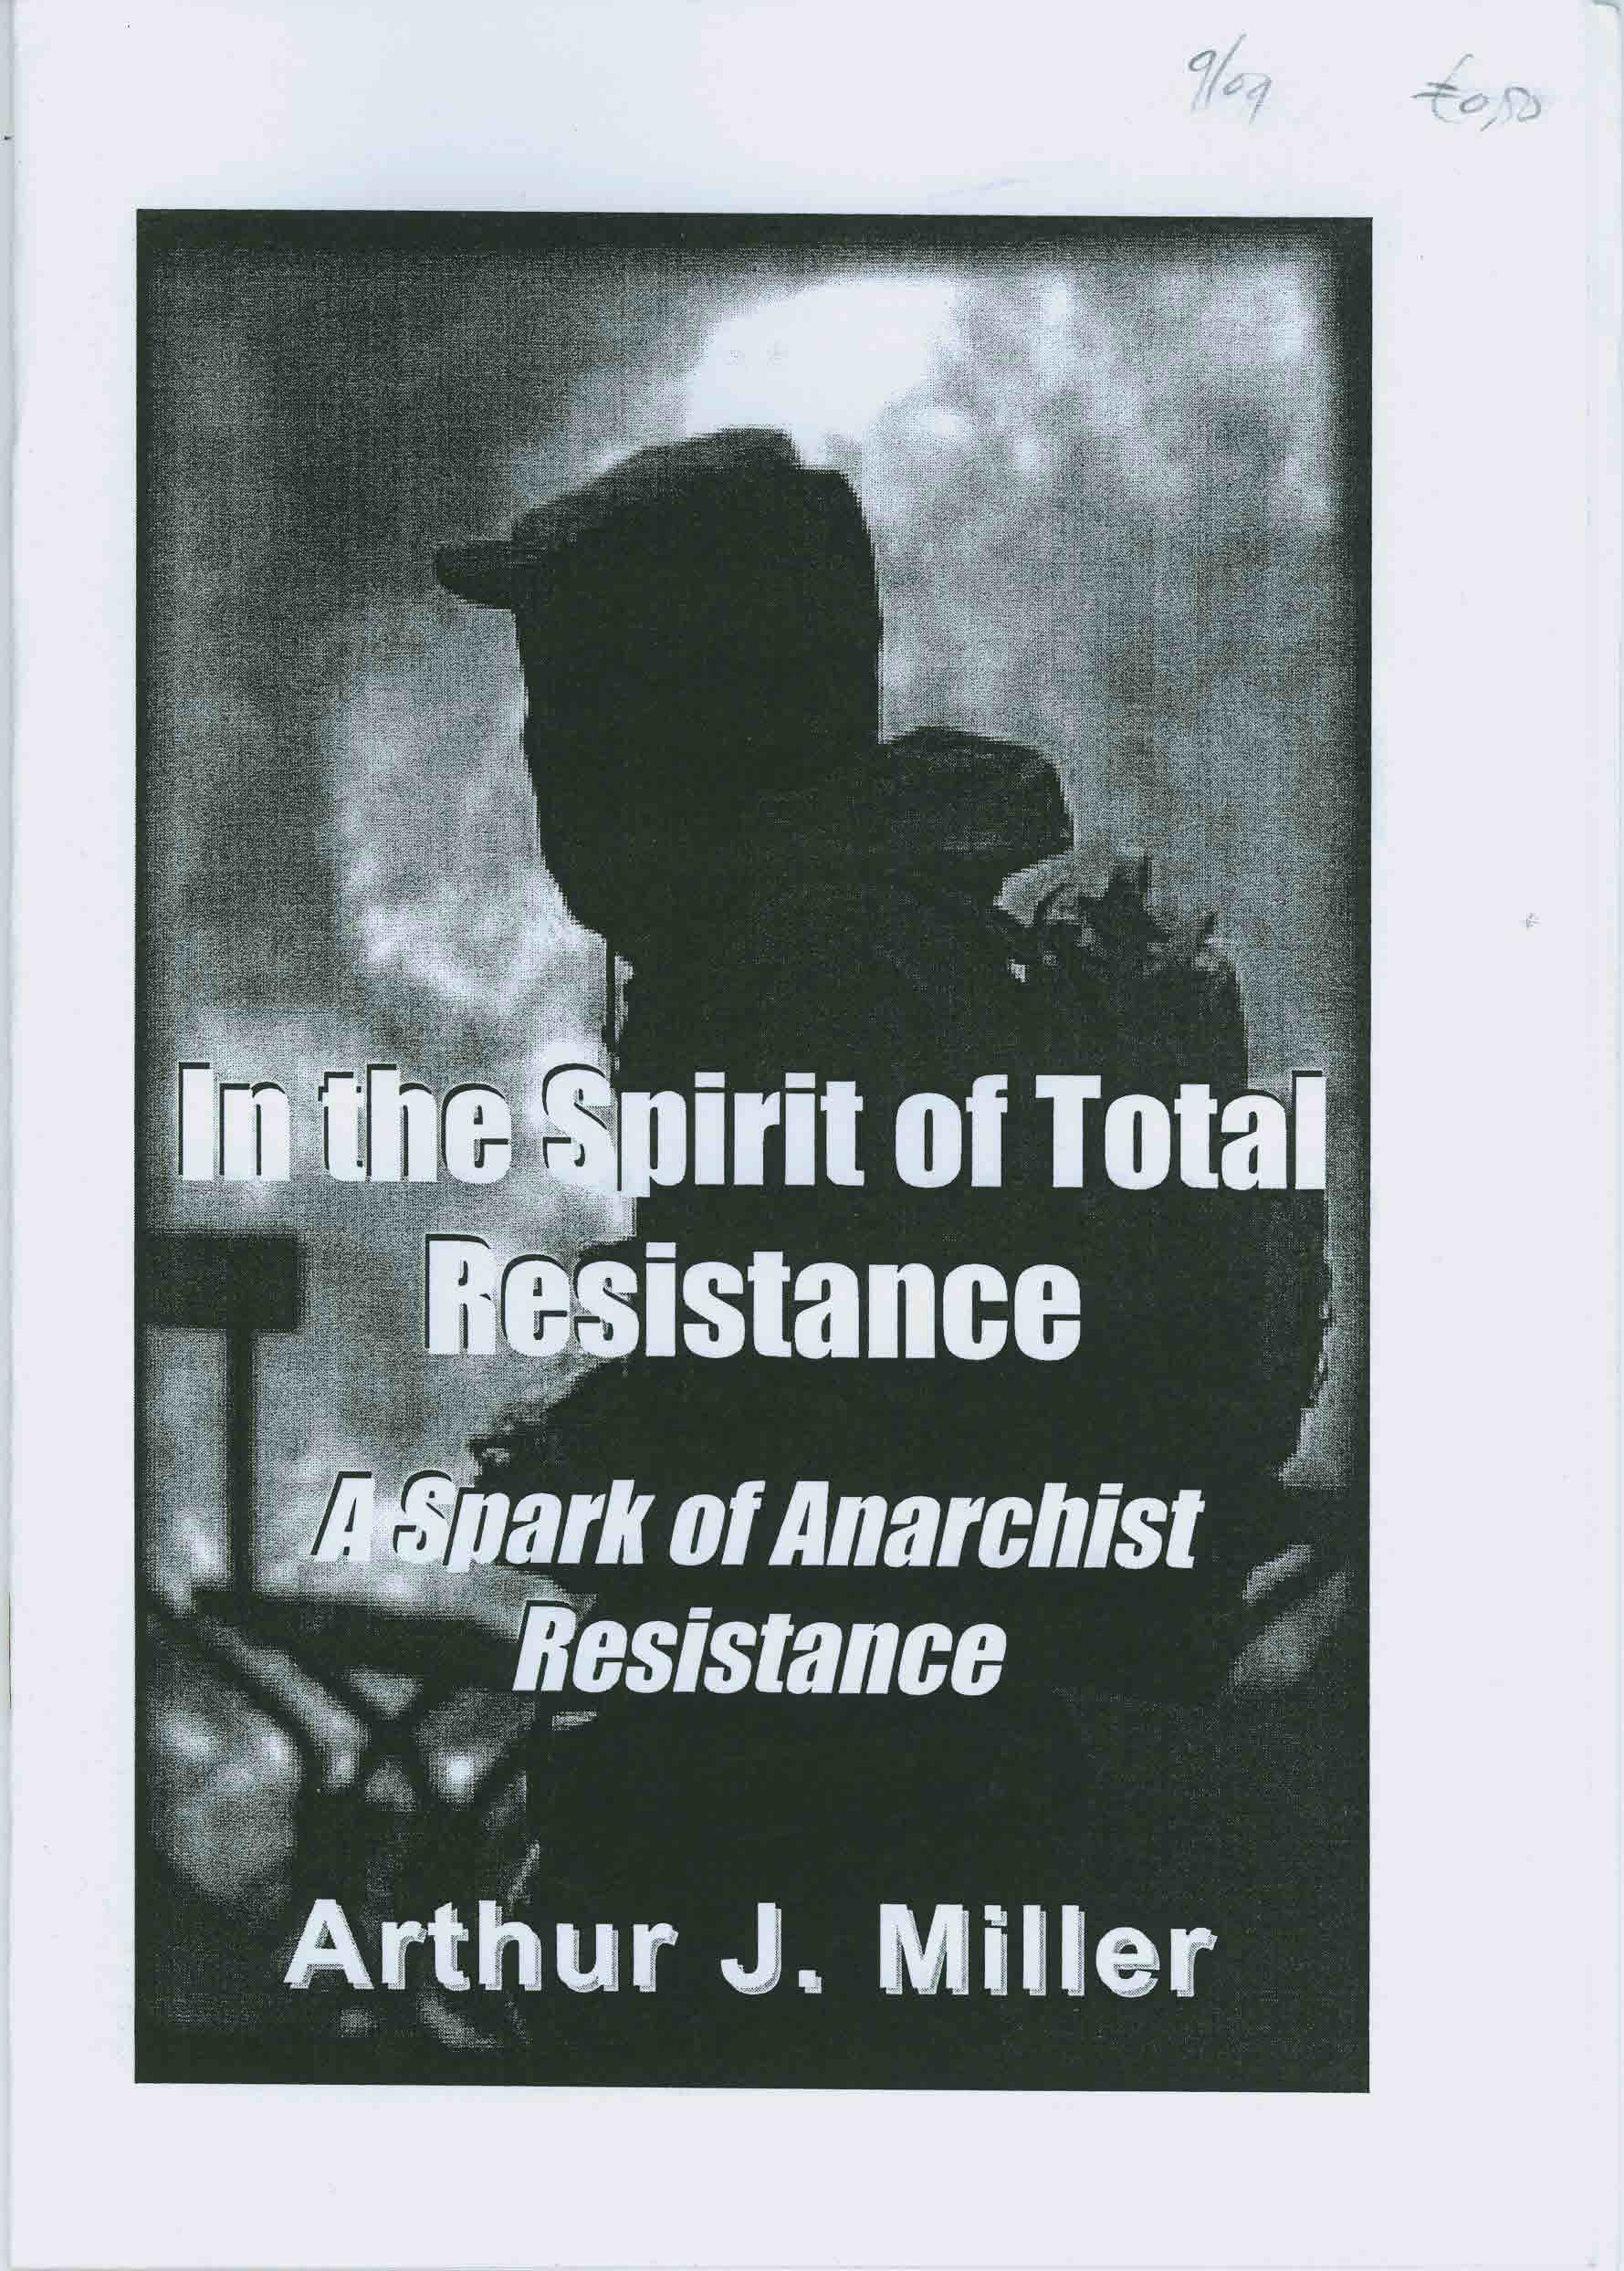 In the spirit of total resistance